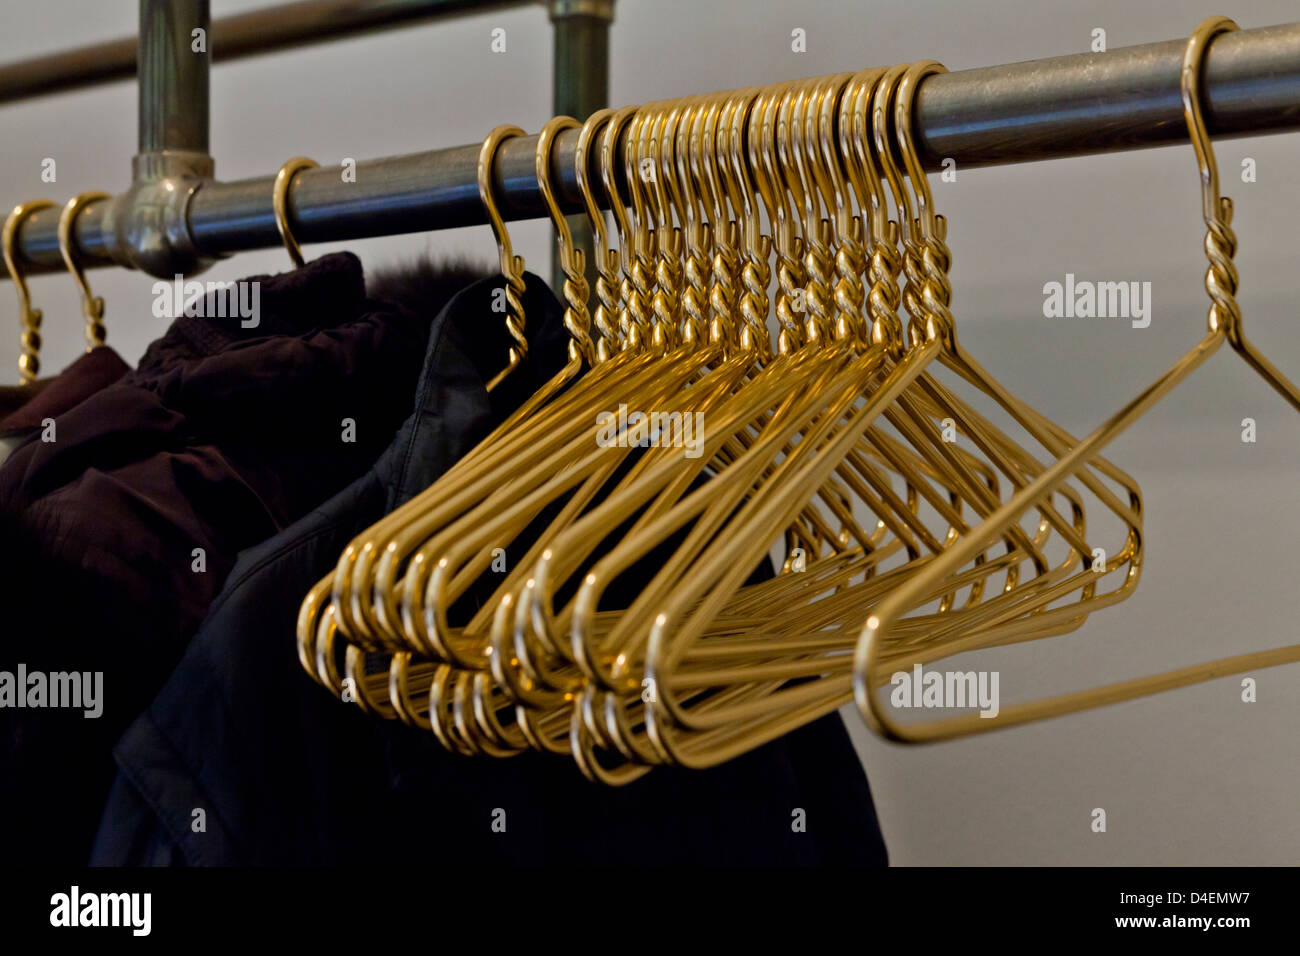 Brass coat hangers - Stock Image